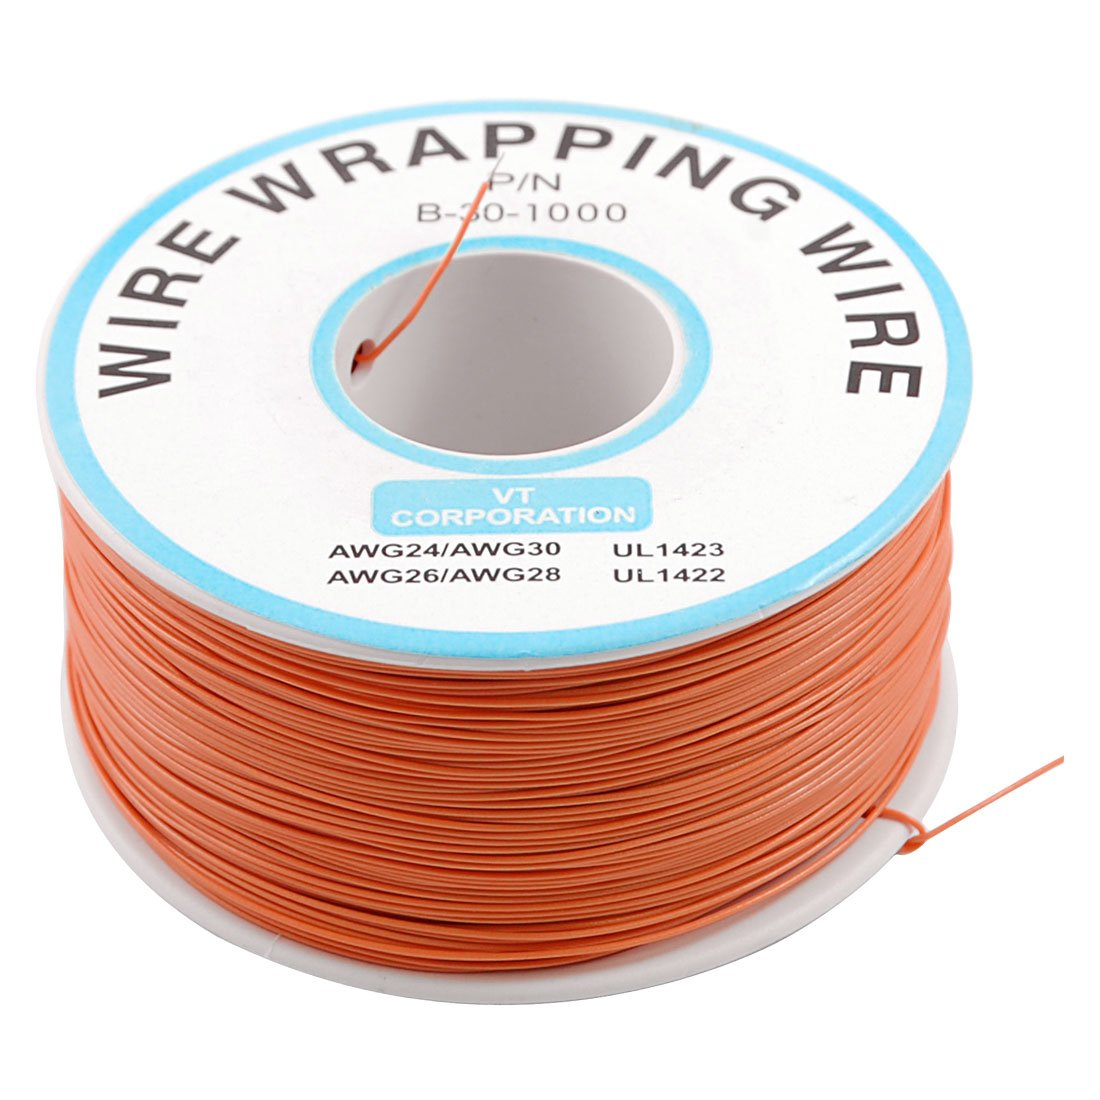 EWS PCB Solder Orange Flexible 0.5mm Outside Dia 30AWG Wire Wrapping Wrap 1000Ft